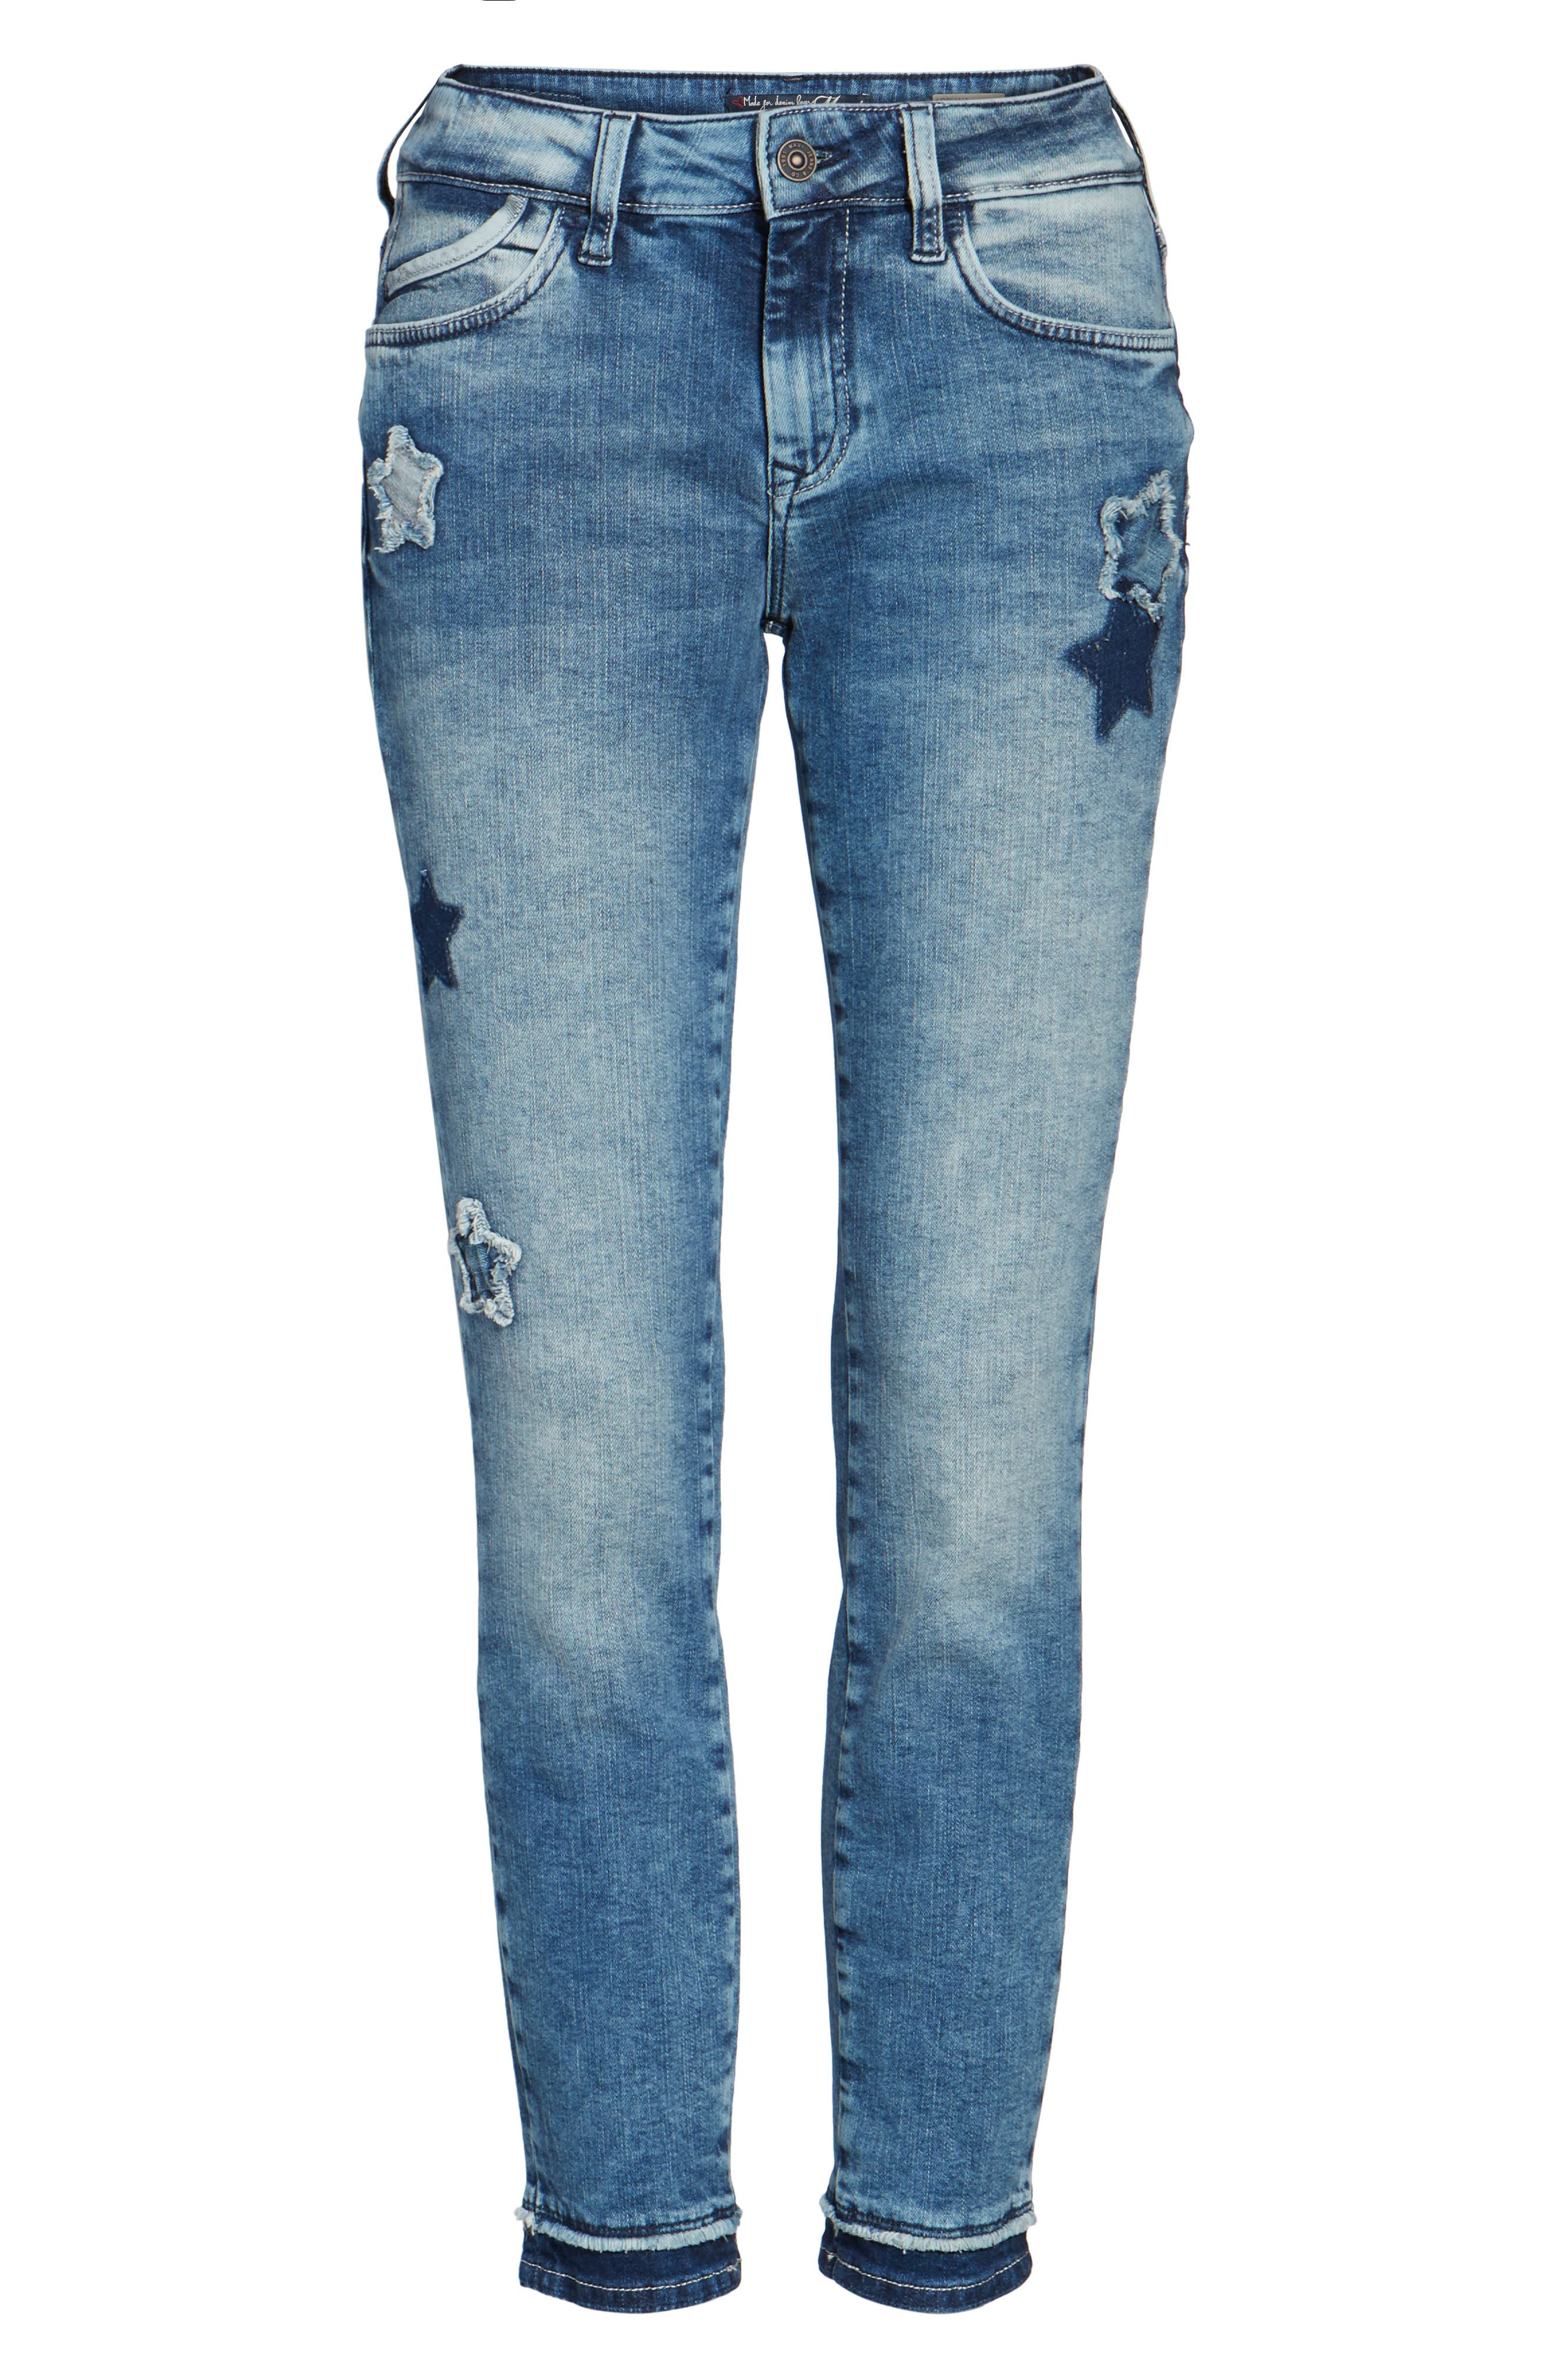 Adriana Super Skinny Ankle Jeans,                             Alternate thumbnail 6, color,                             420